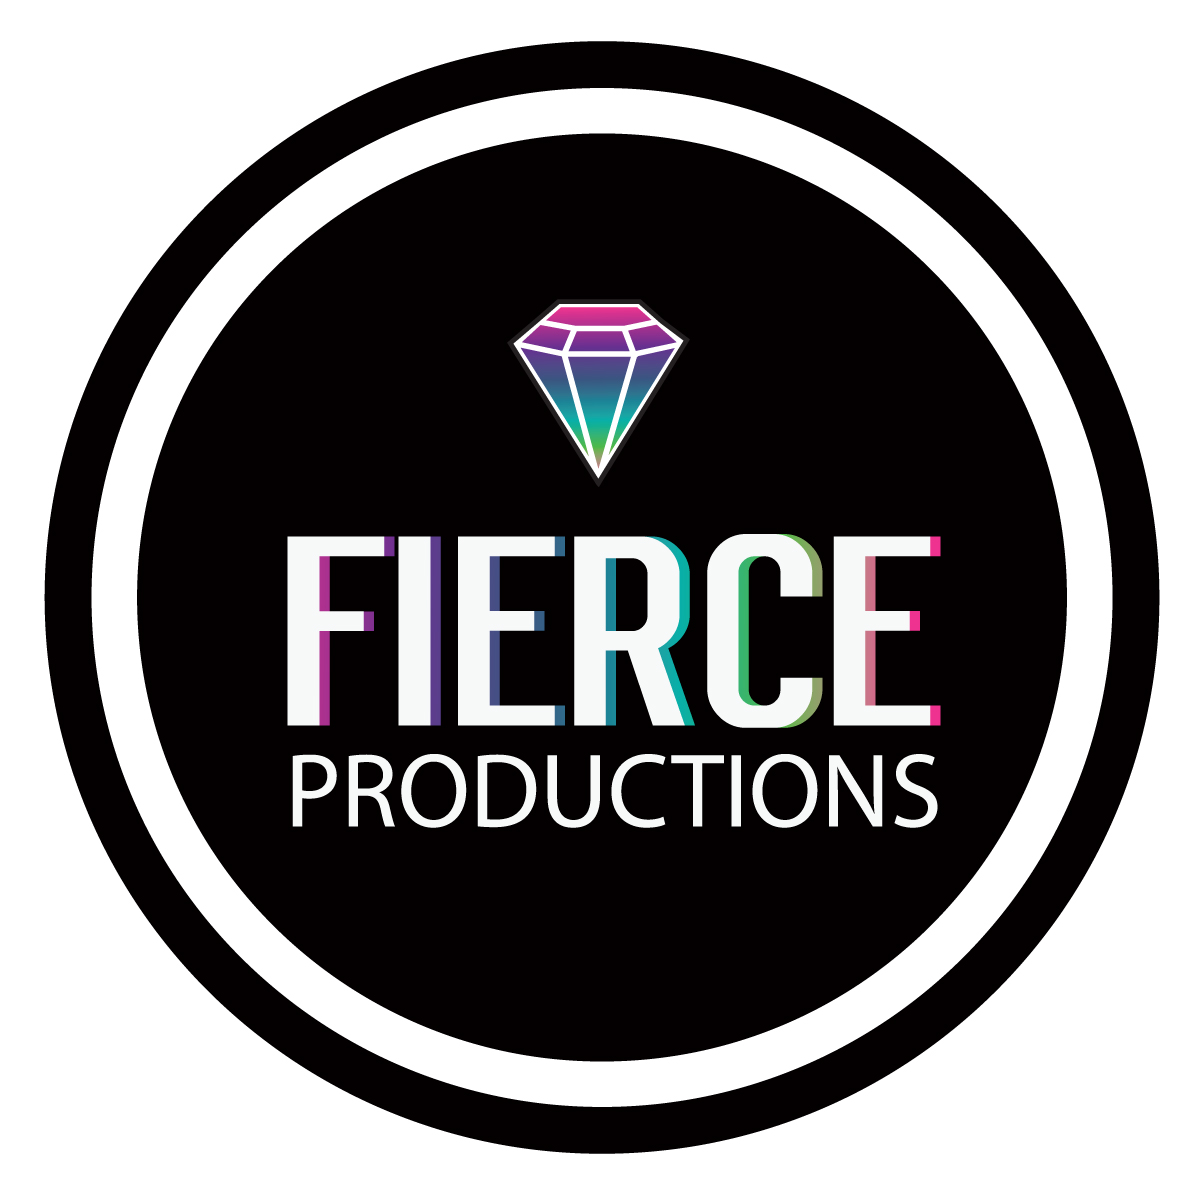 Fierce Productions